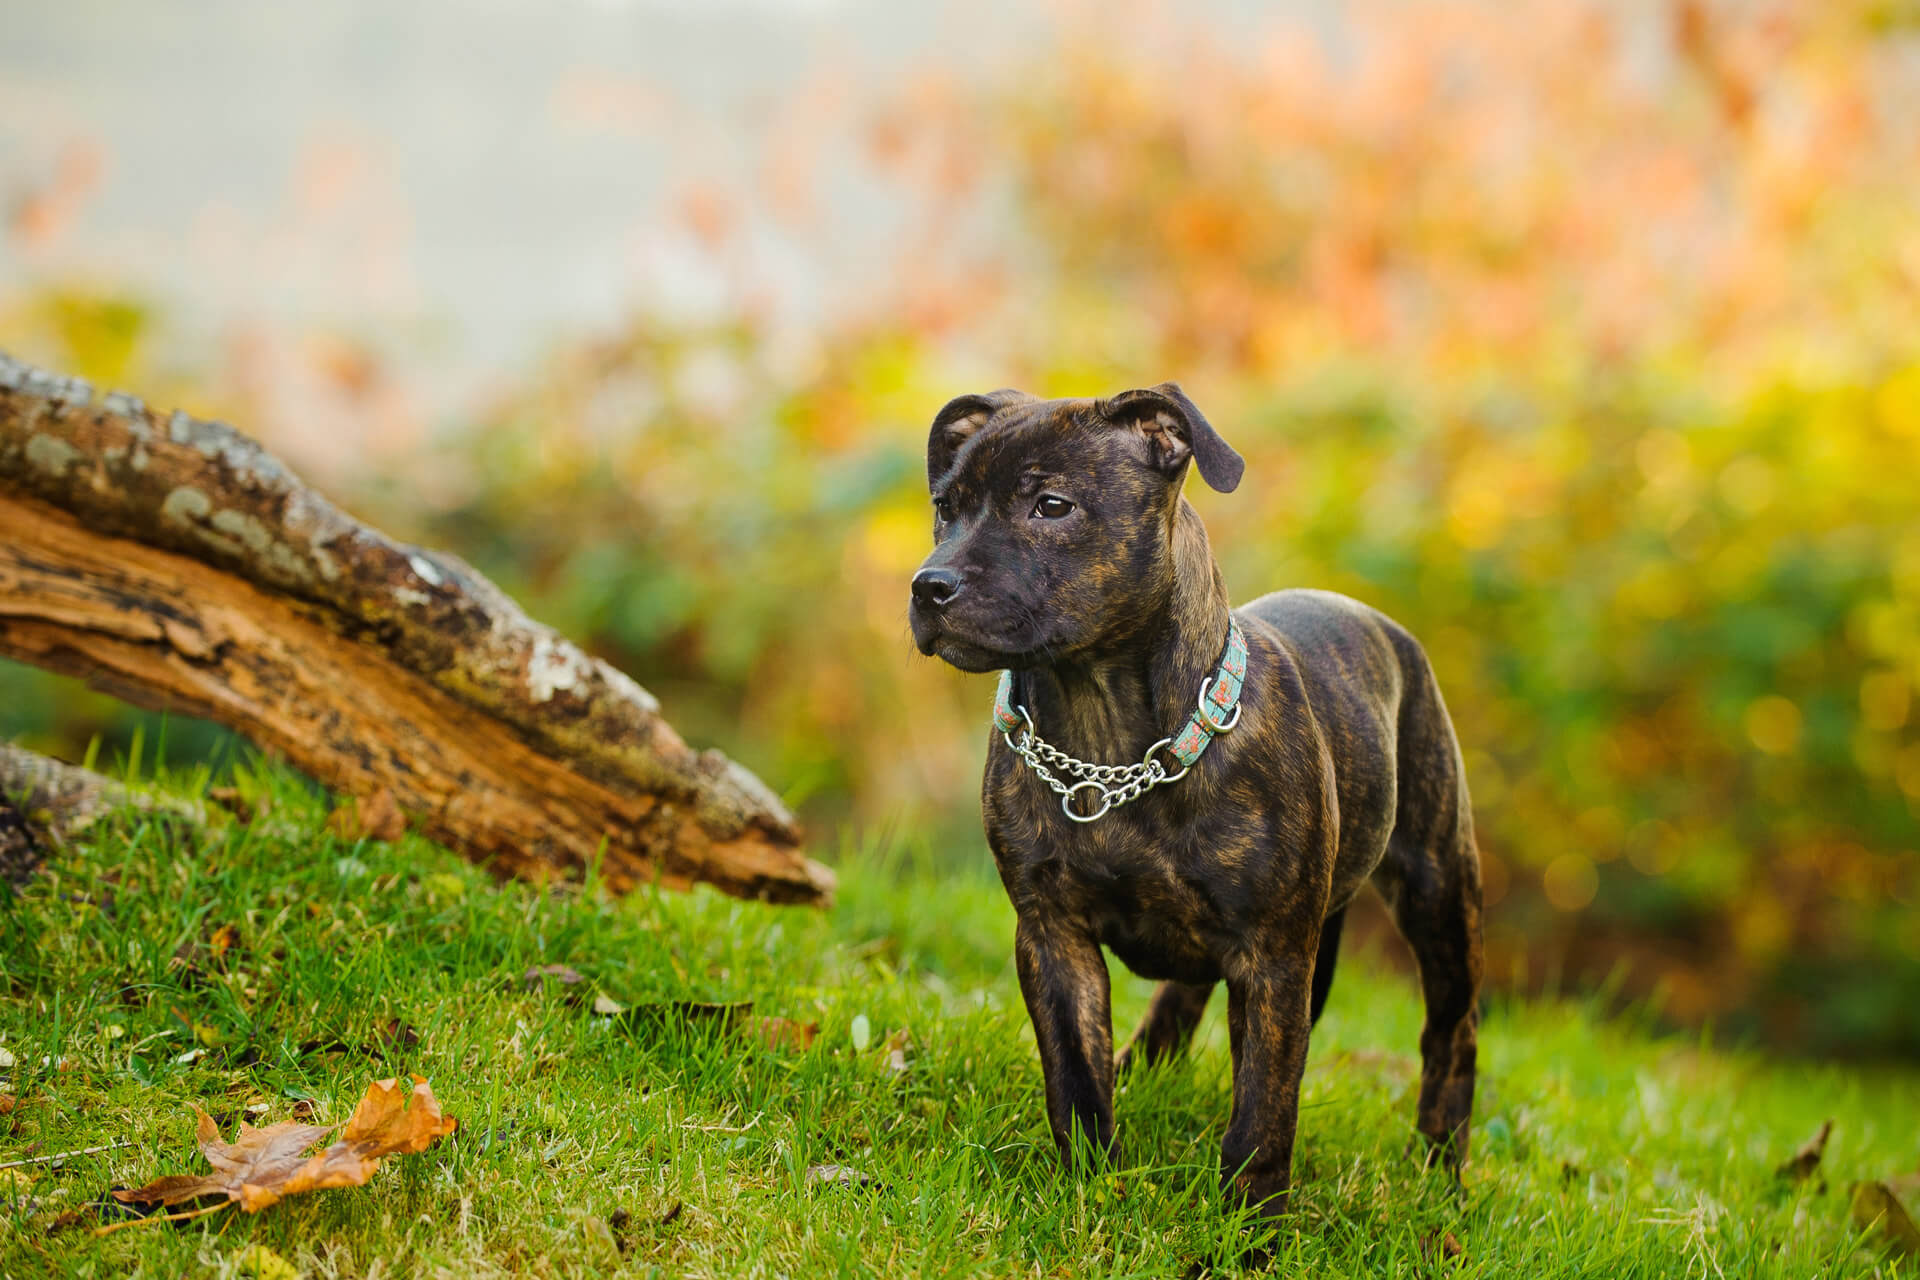 Dog-Friendly Backyard: Ideas, Tips And Tricks To Keep Your Dog Safe In Your Backyard